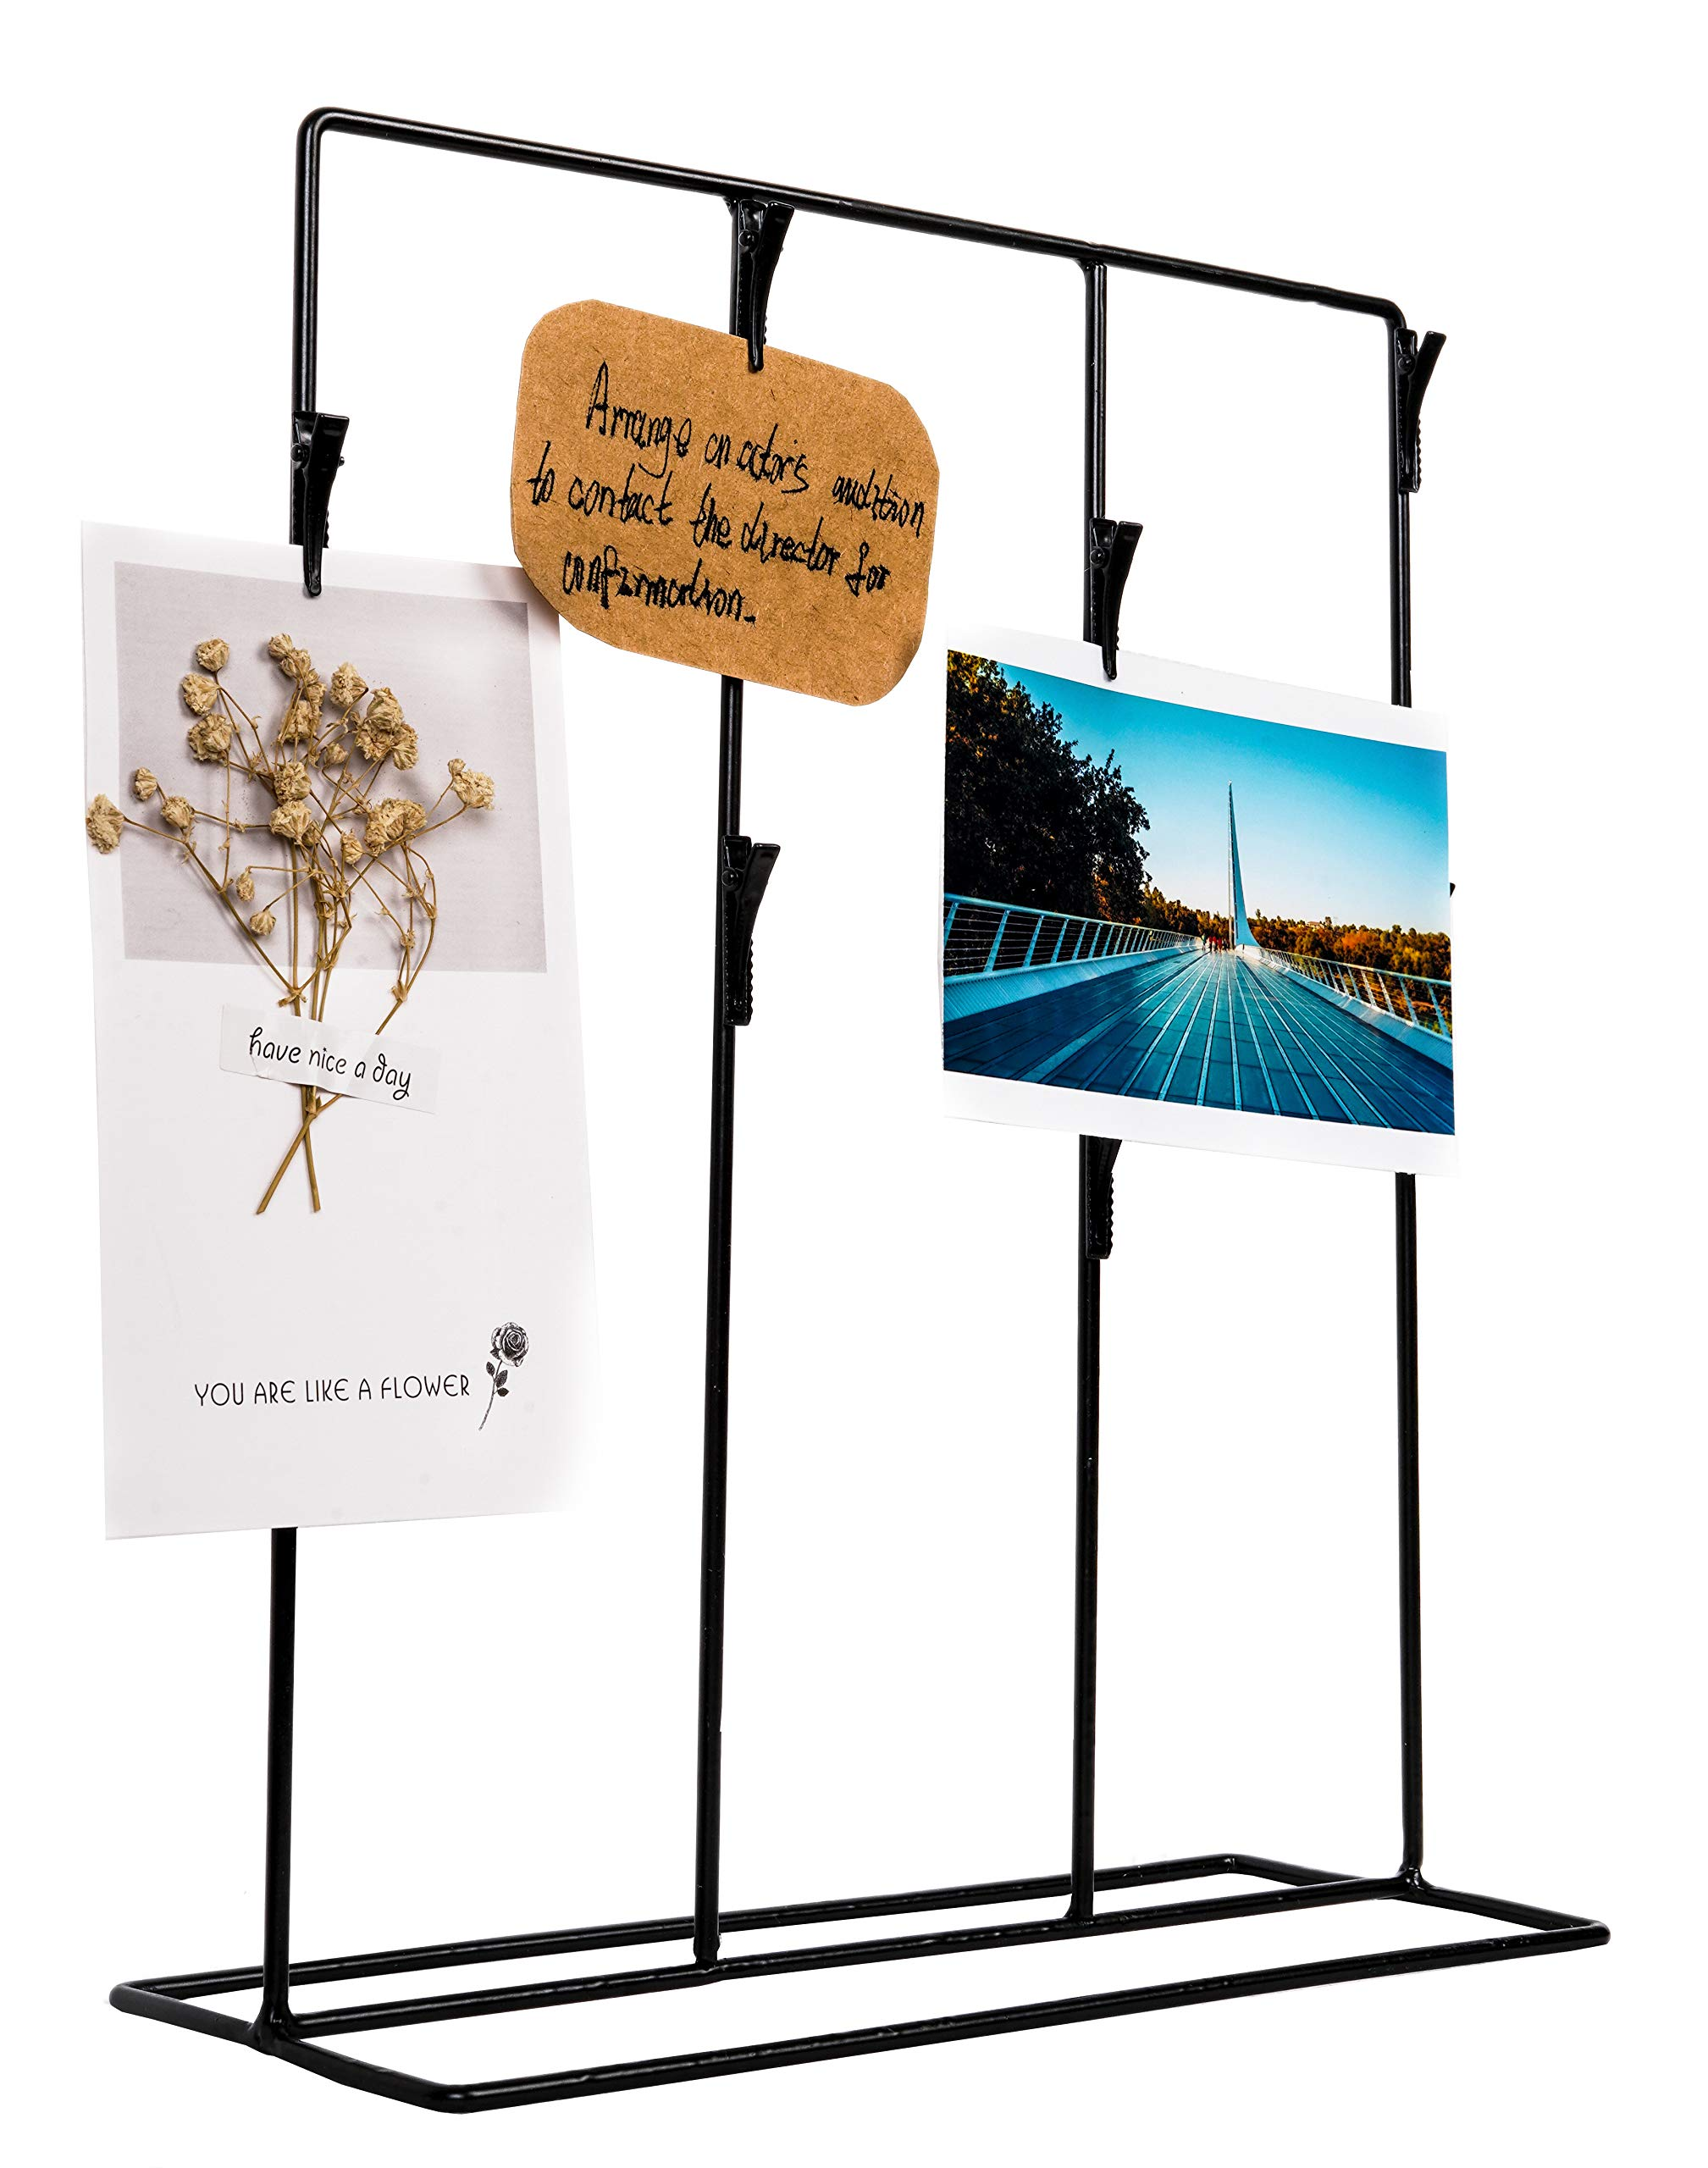 Black Clip Stand Photo Holder - Holds Eight 4x6 Pictures - Tabletop Decor- Picture Display - Black Iron - Black Metal Clips - Simple Modern - DIY Project by Space Art Deco